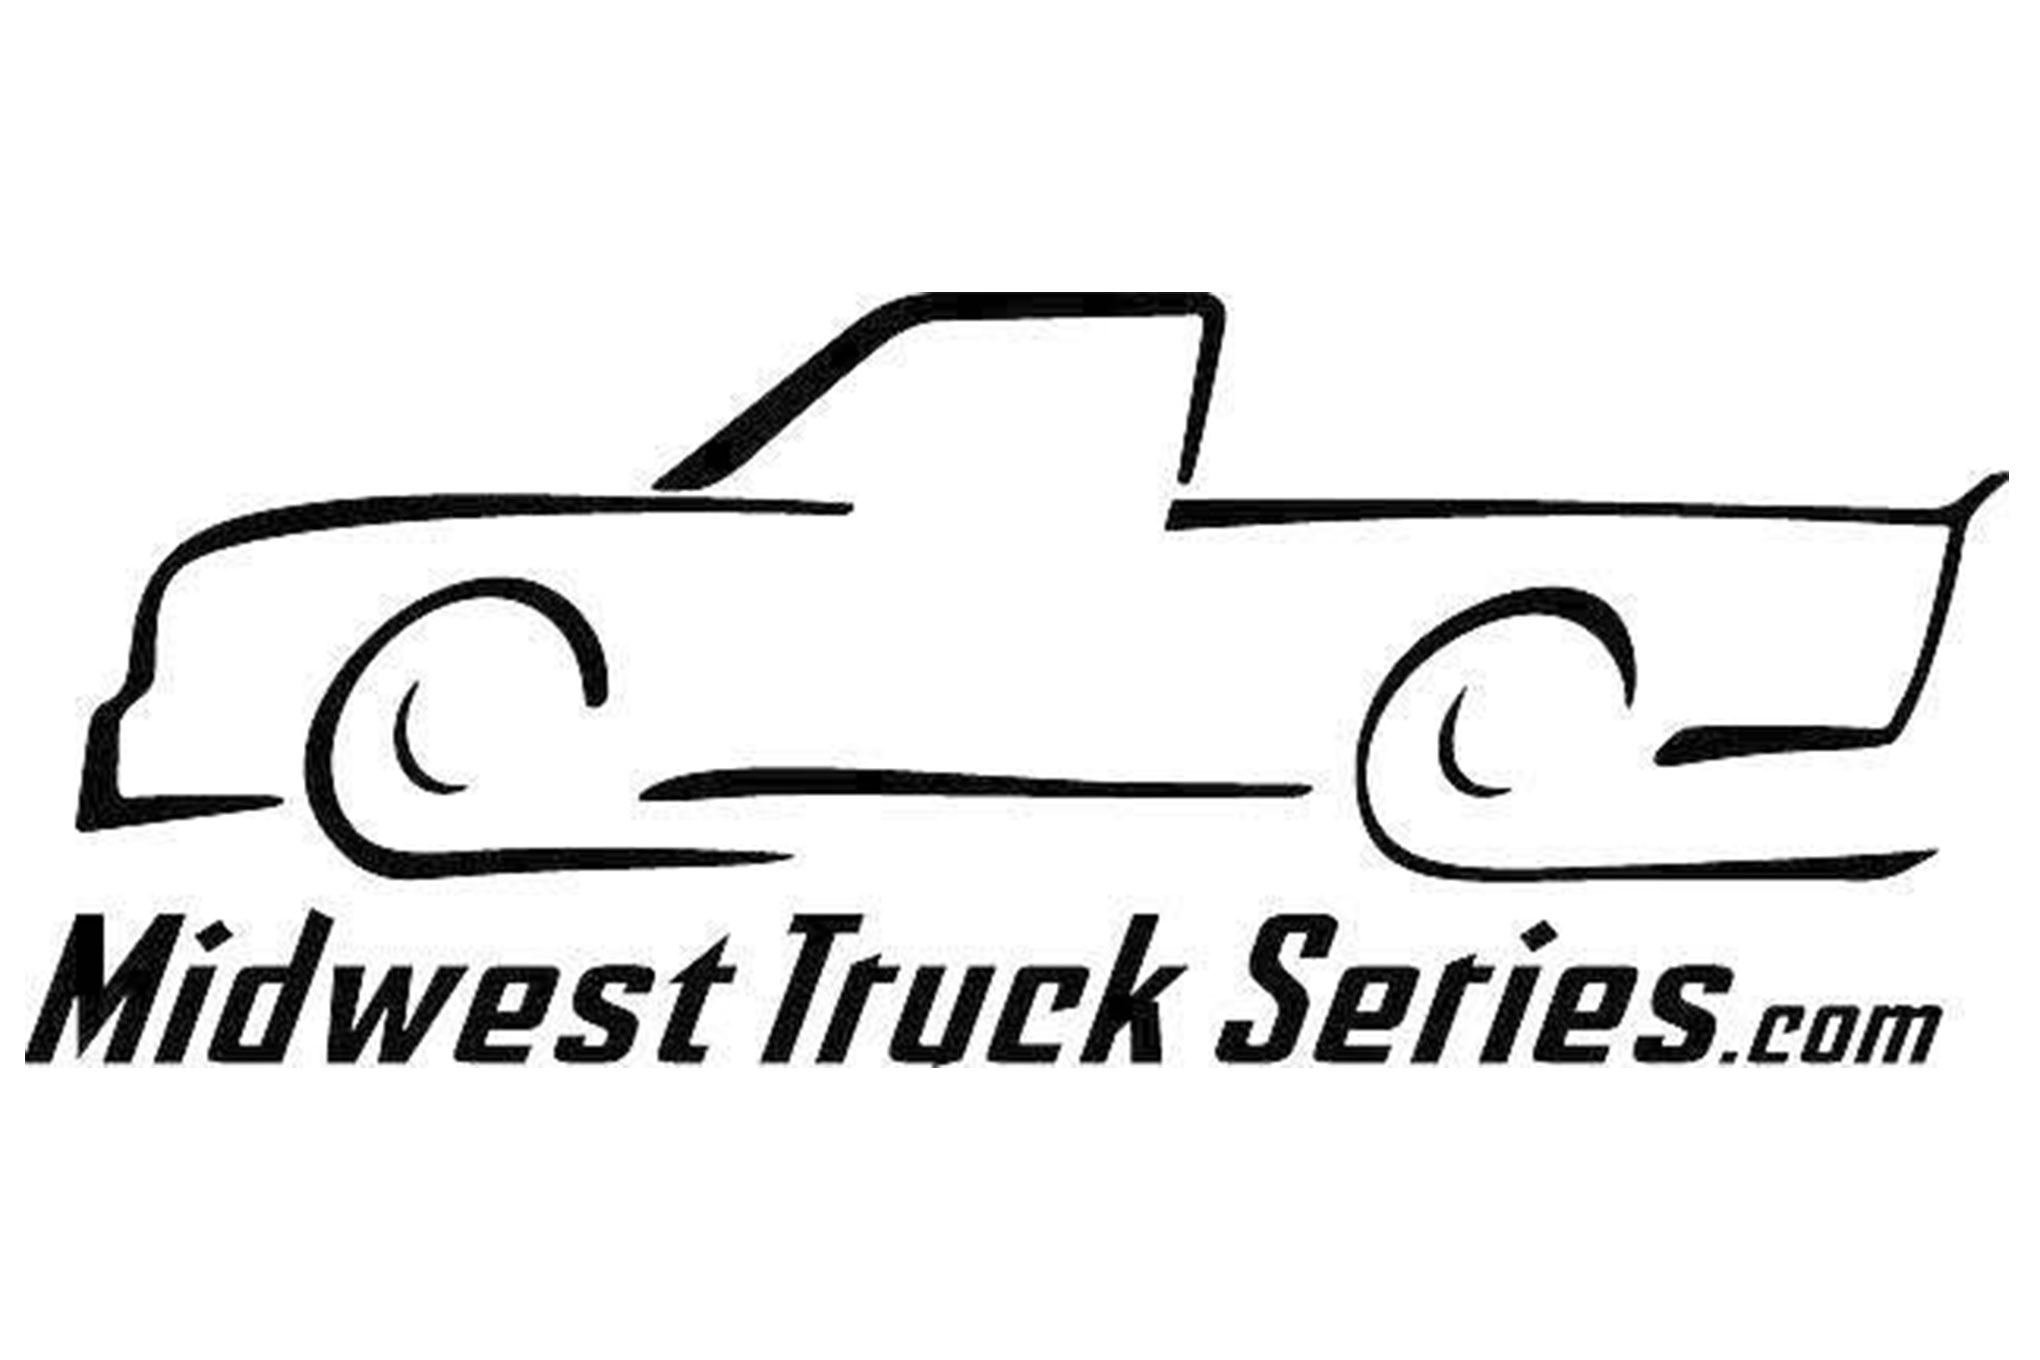 Short Track Series Championship Watch Update